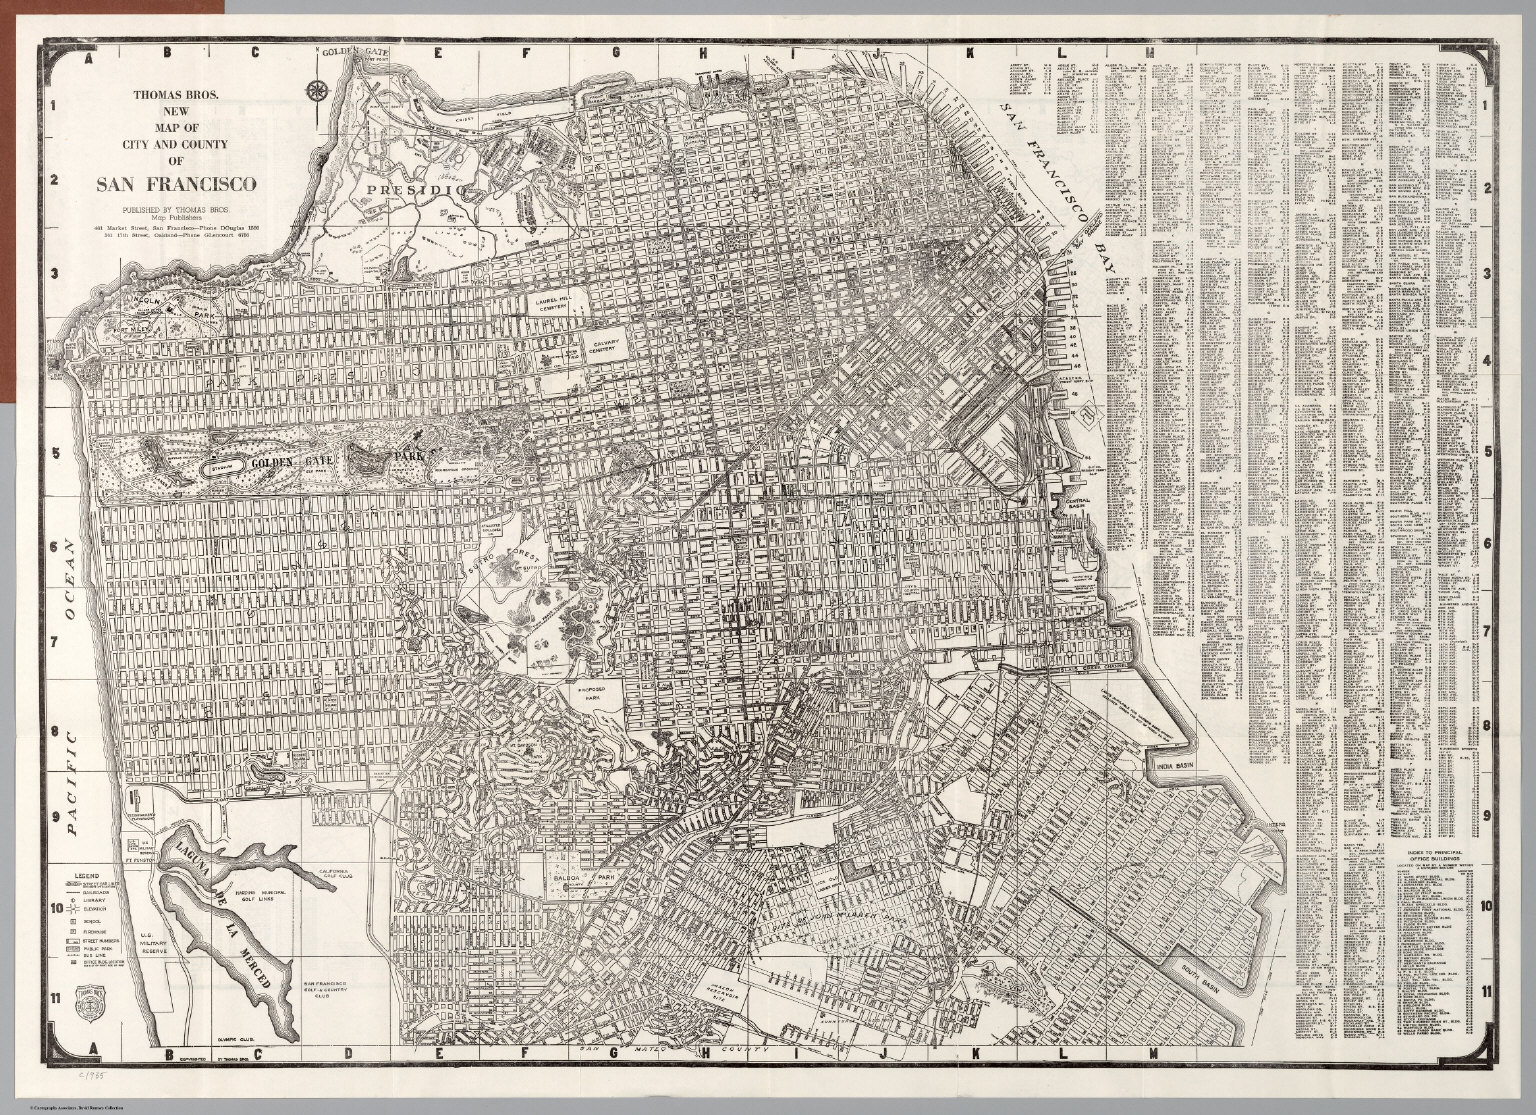 City And County Of San Francisco David Rumsey Historical Map